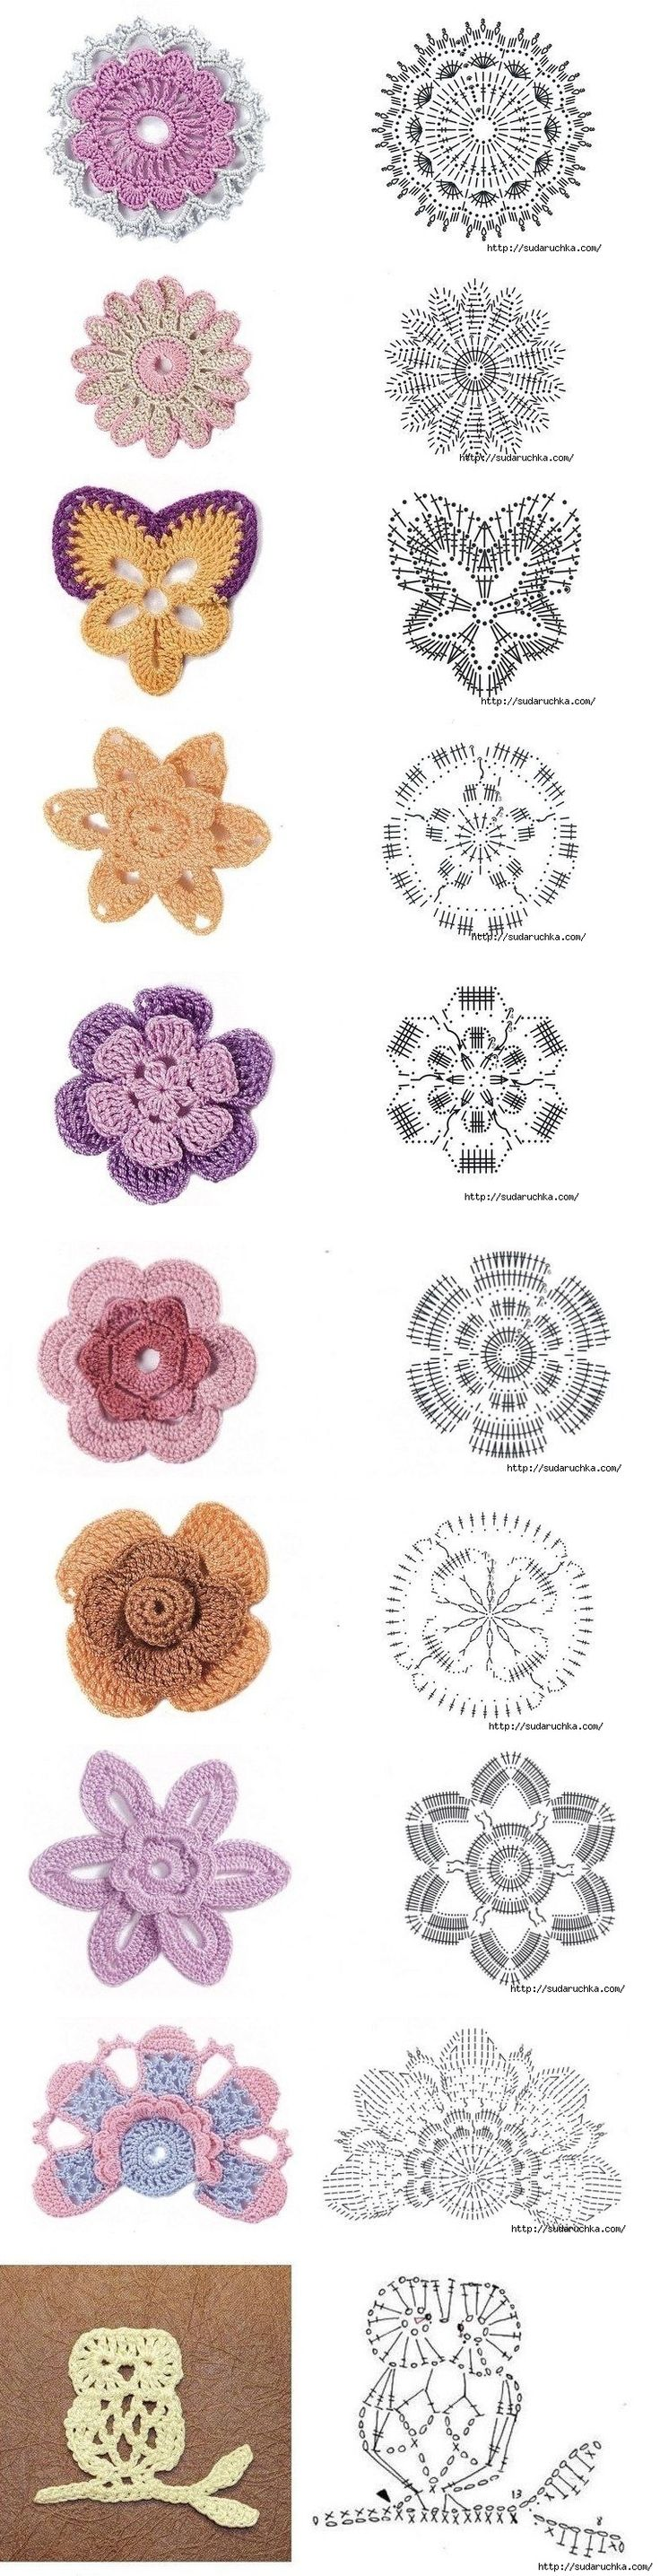 Flowers and graphs for making them - what a shame I can't read this style of patterns!